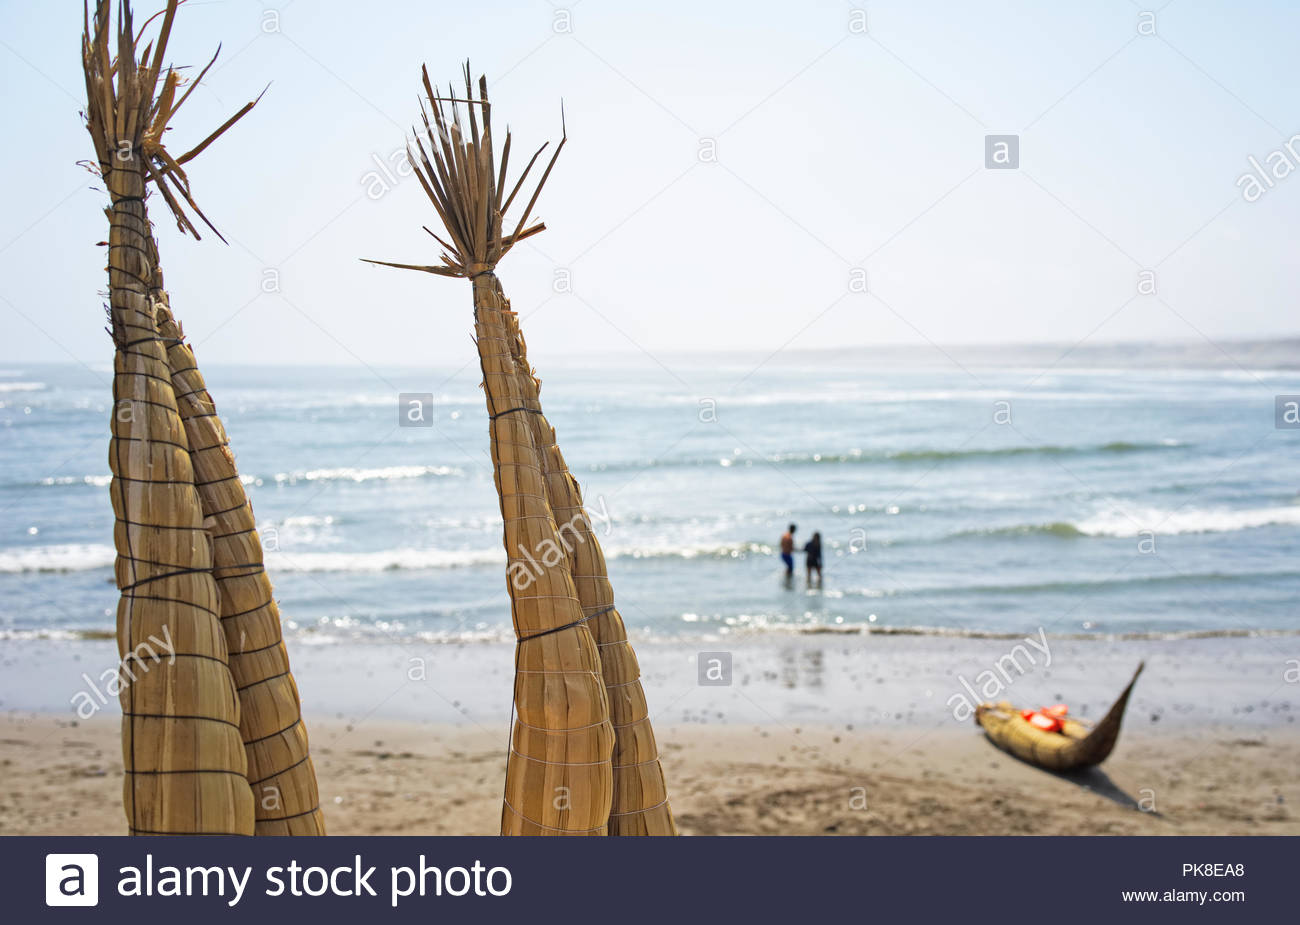 Reed boat Caballito de Totora on the beach in Huanchaco Trujillo Peru with a couple in the background who is out swimming - Stock Image